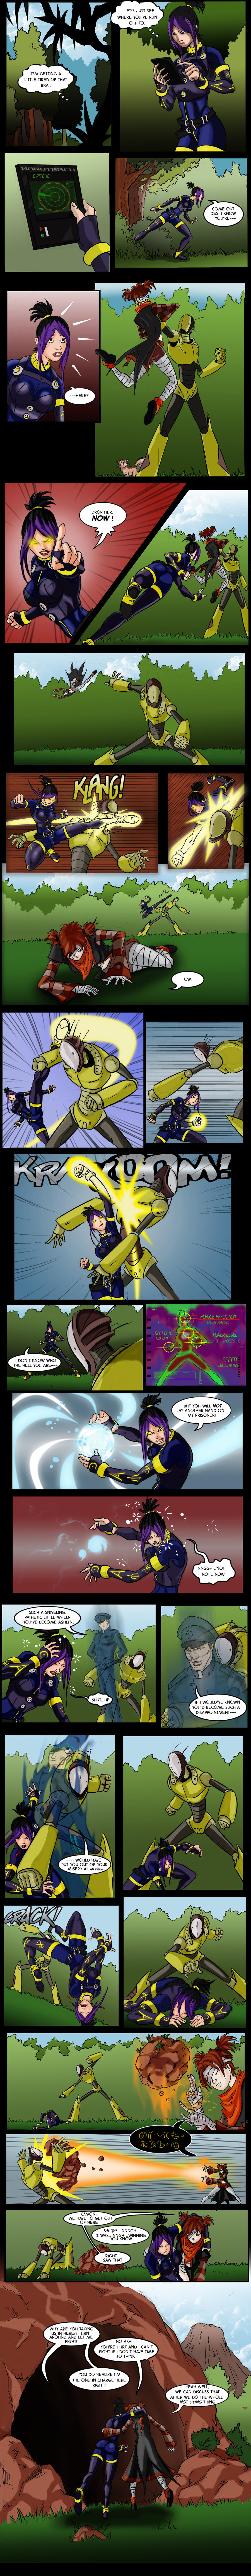 TCE Round 1_Page 2 of 3 by WiL-Woods